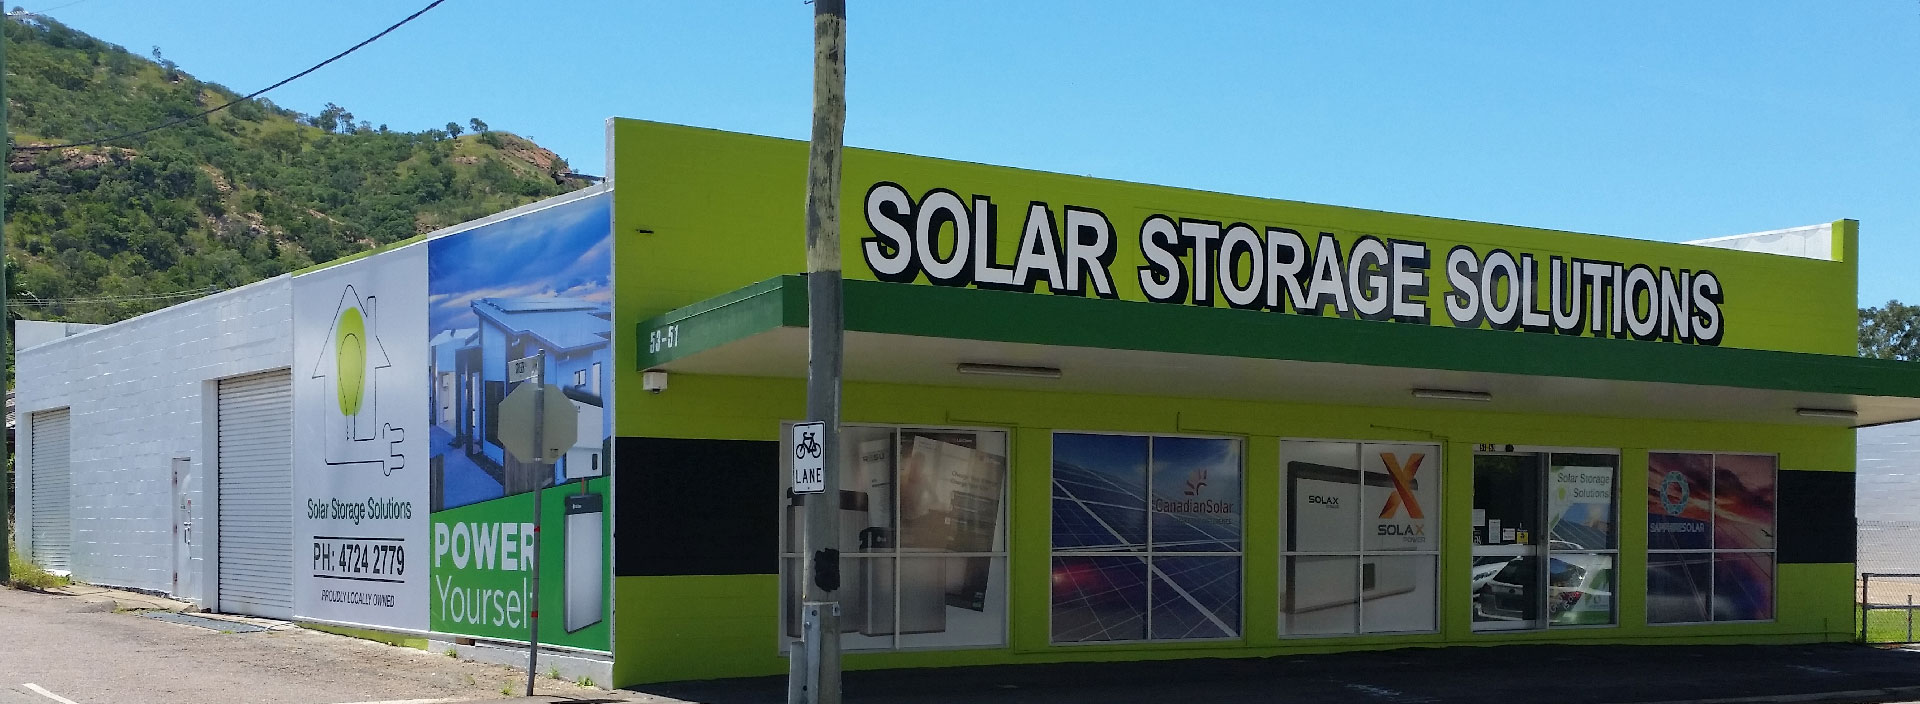 Solar Storage Solutions shop front in West End Townsville